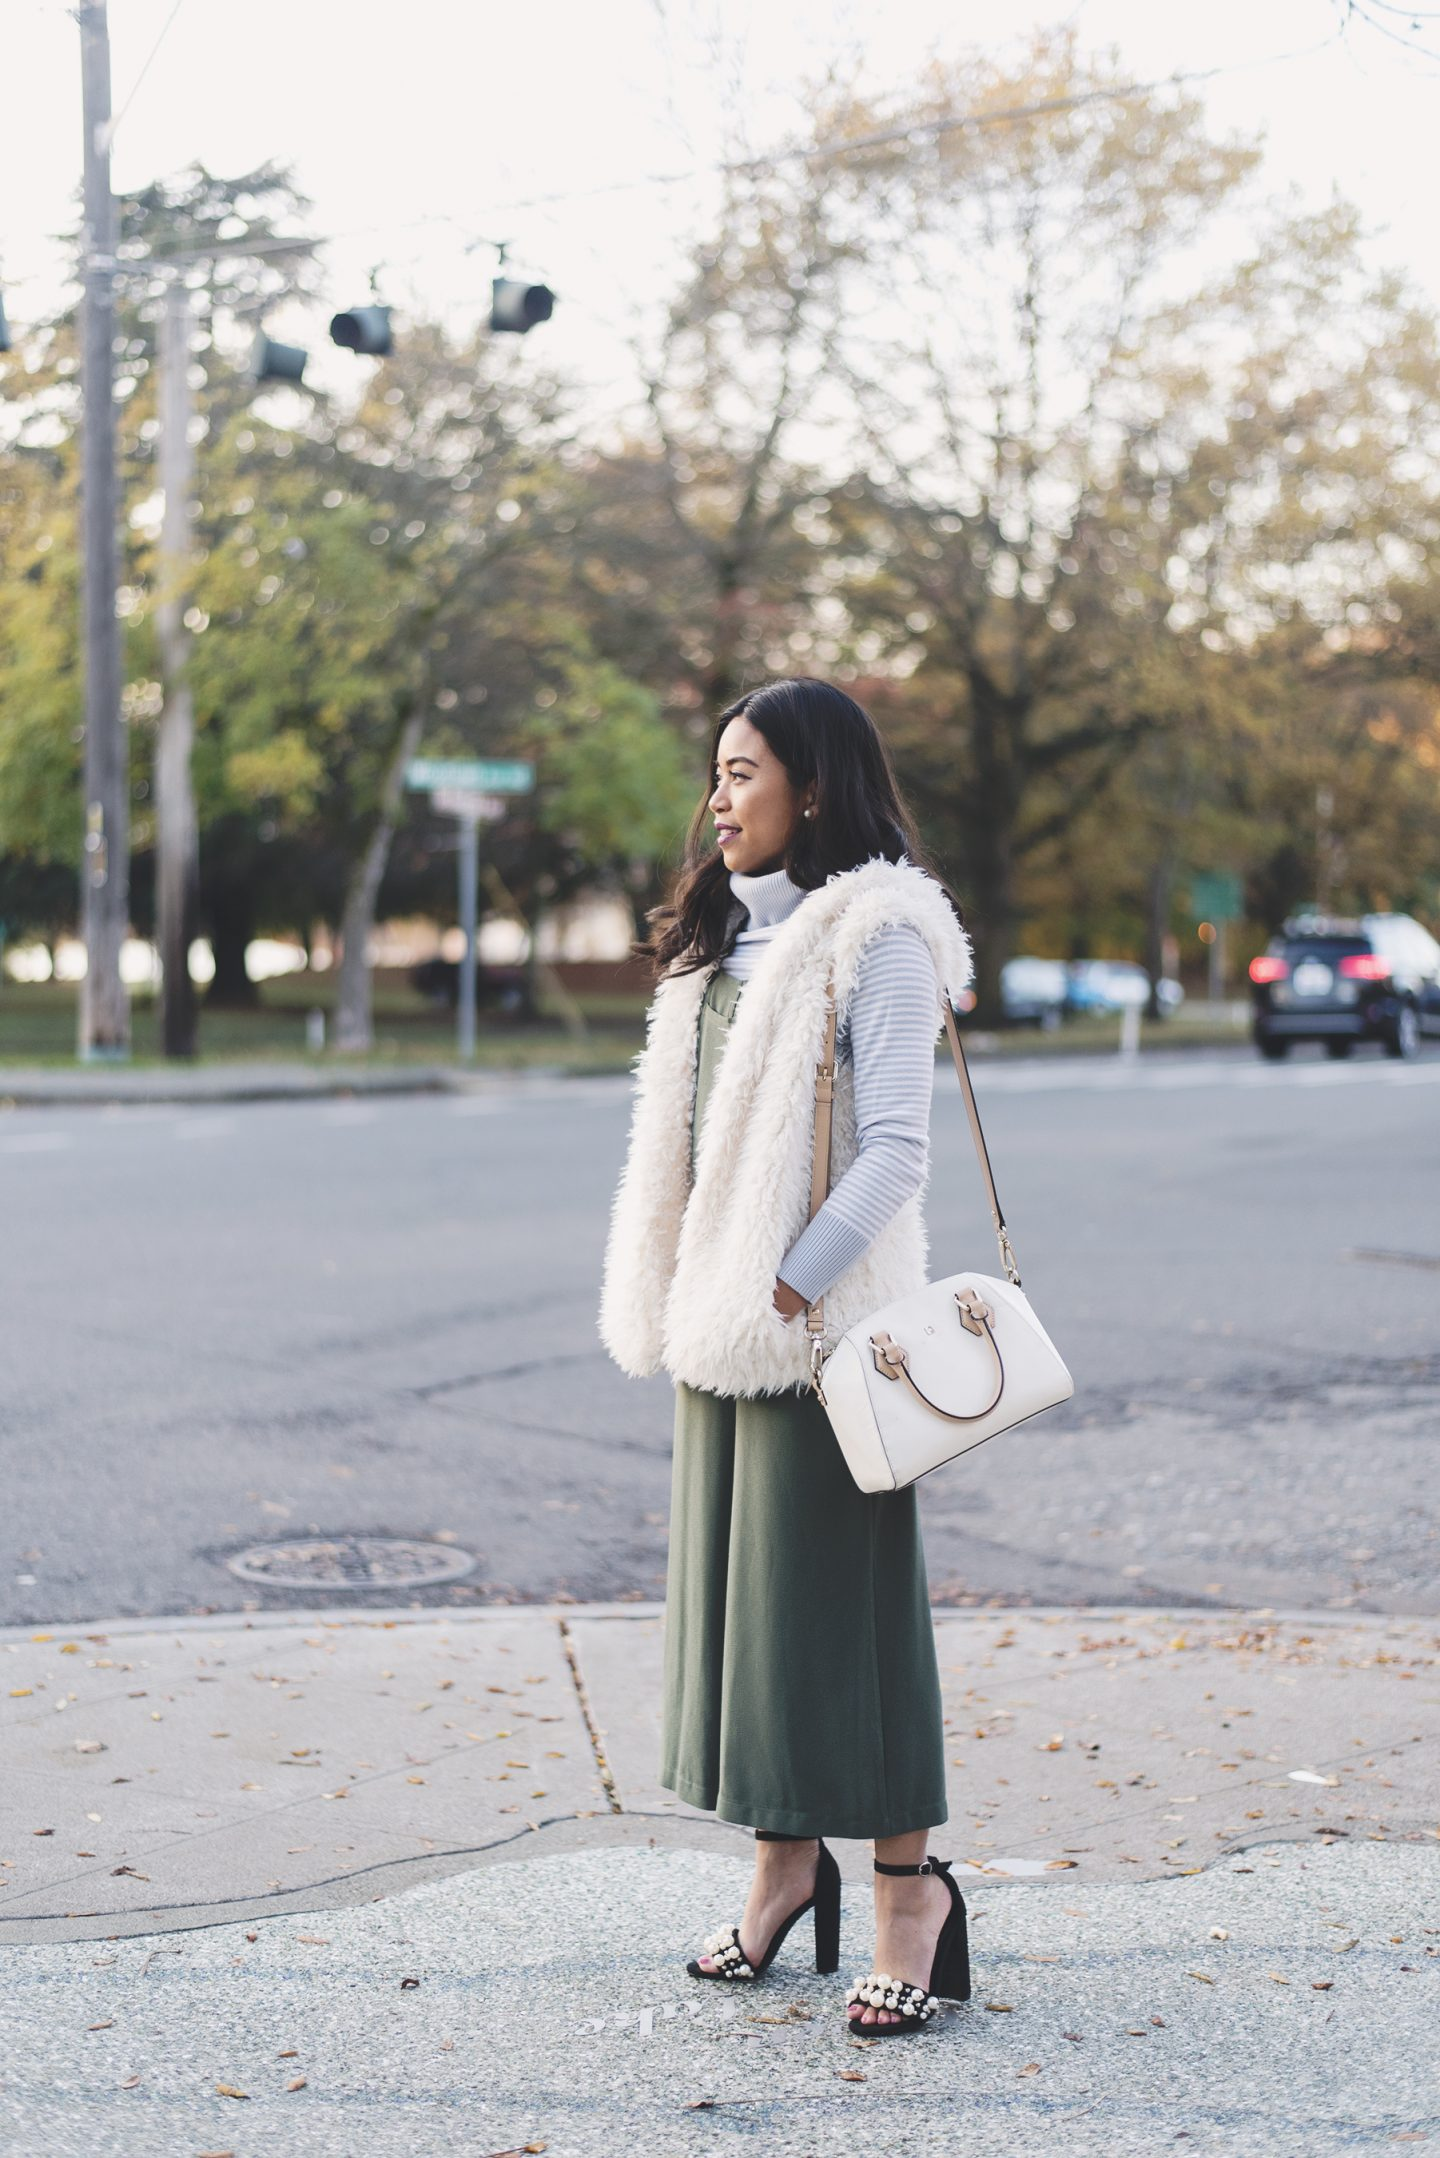 How to look trendy this winter